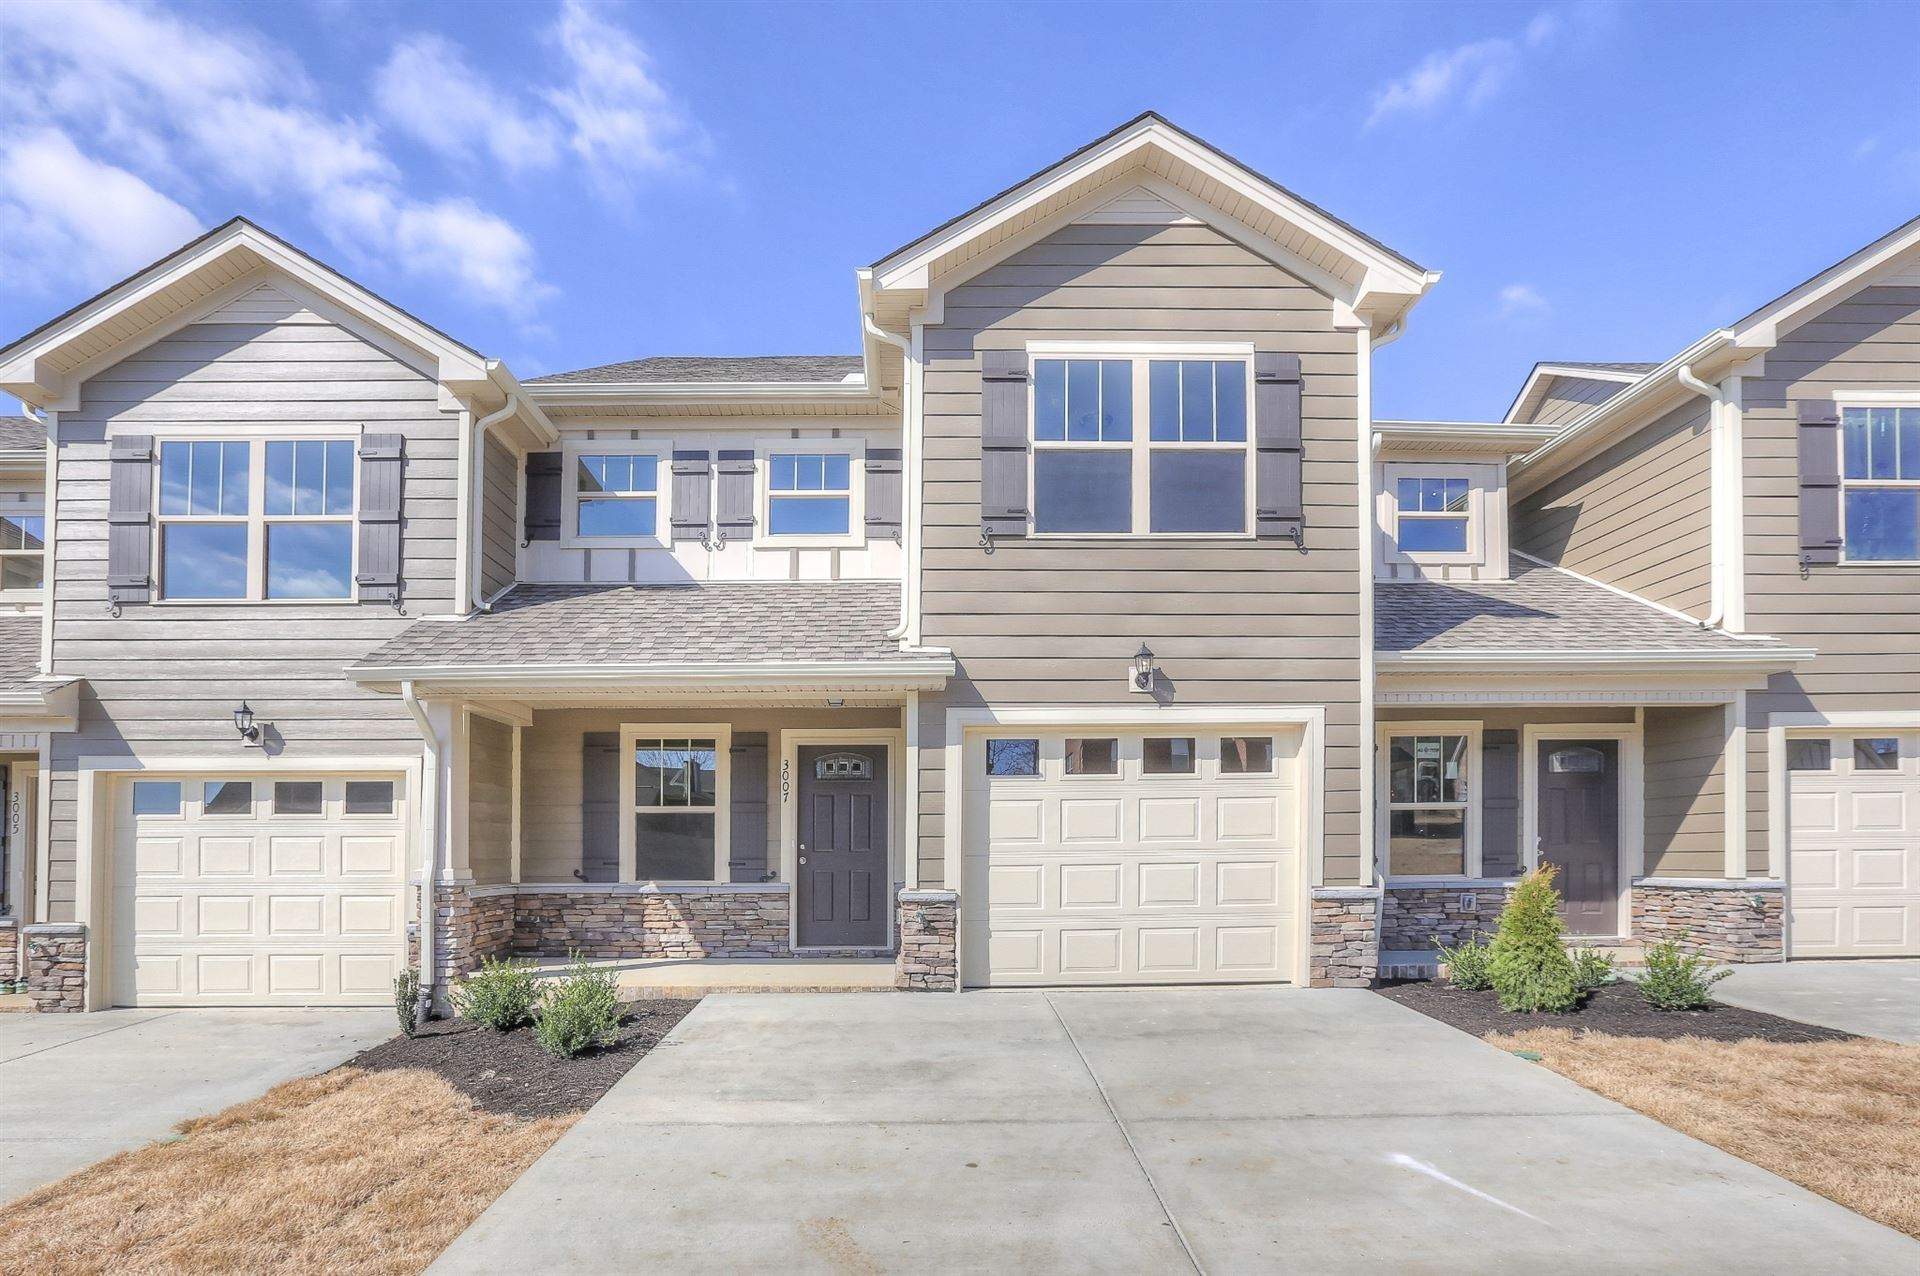 Photo of 106 Shannon Place Lot 4, Spring Hill, TN 37174 (MLS # 2190150)